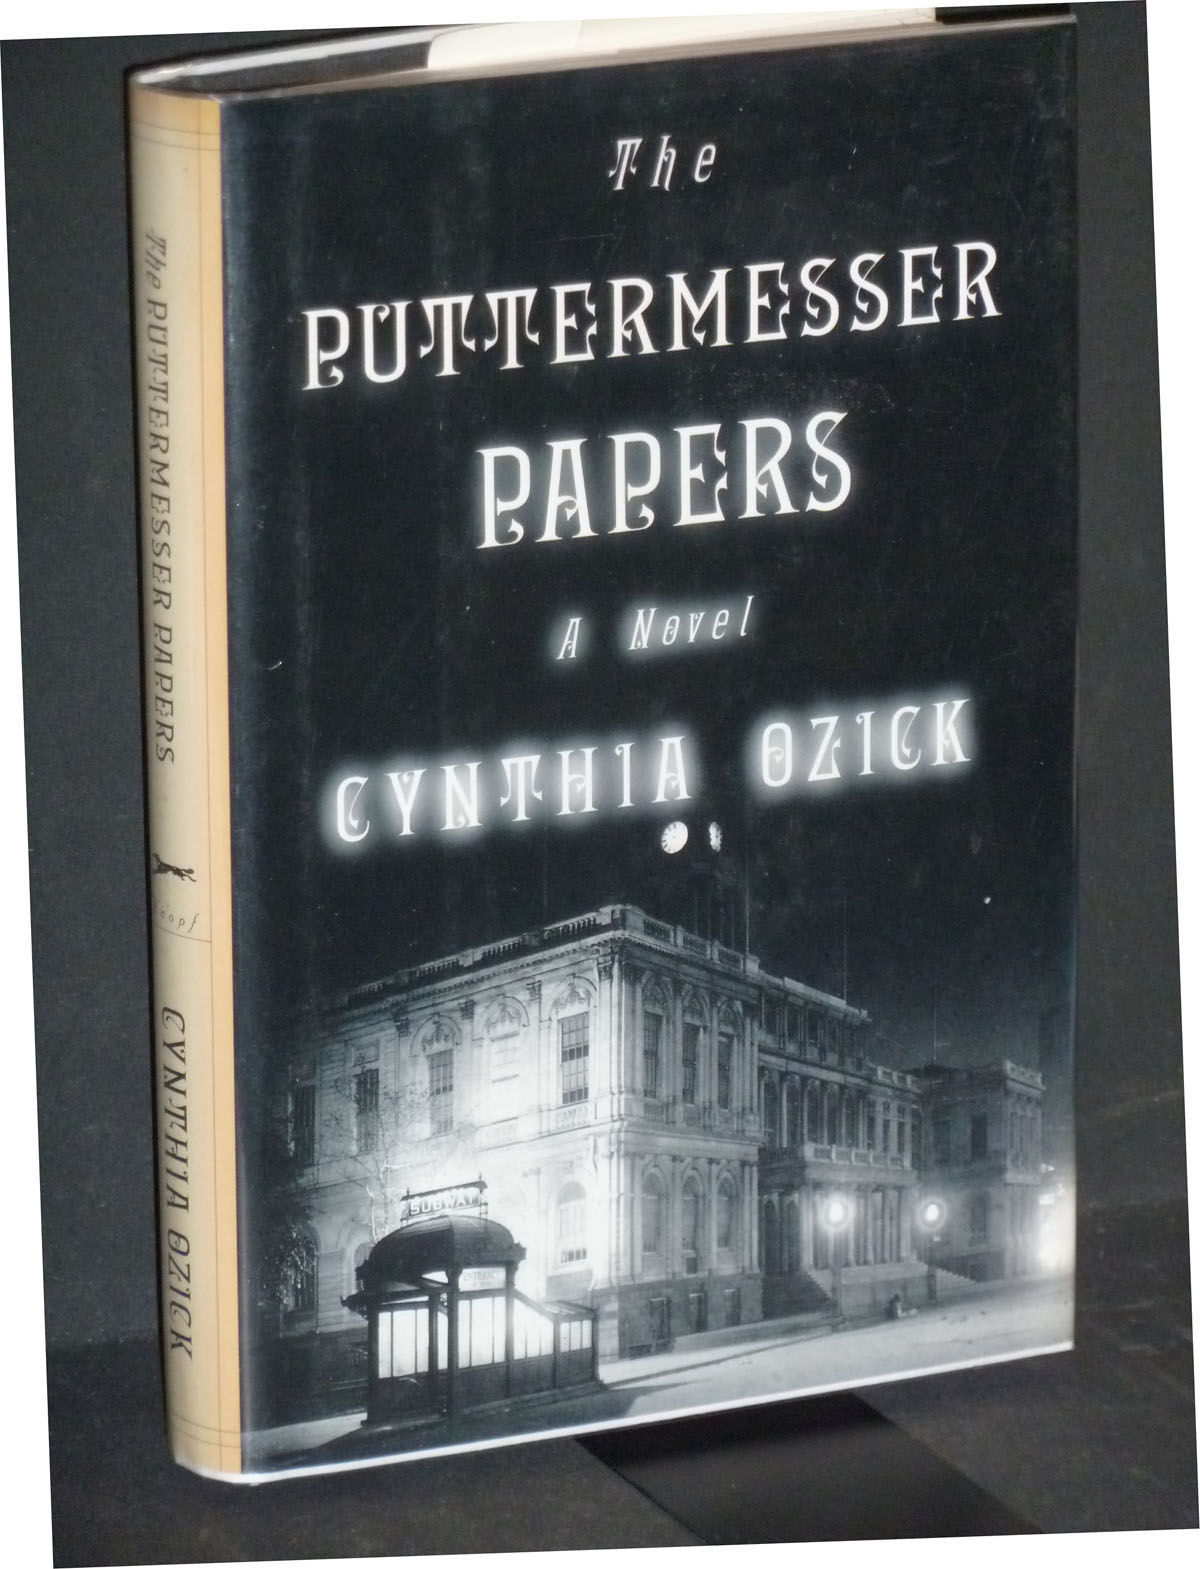 puttermesser papers wiki In cynthia ozick 's 1997 novel the puttermesser papers, a modern jewish woman, ruth puttermesser, creates a female golem out.